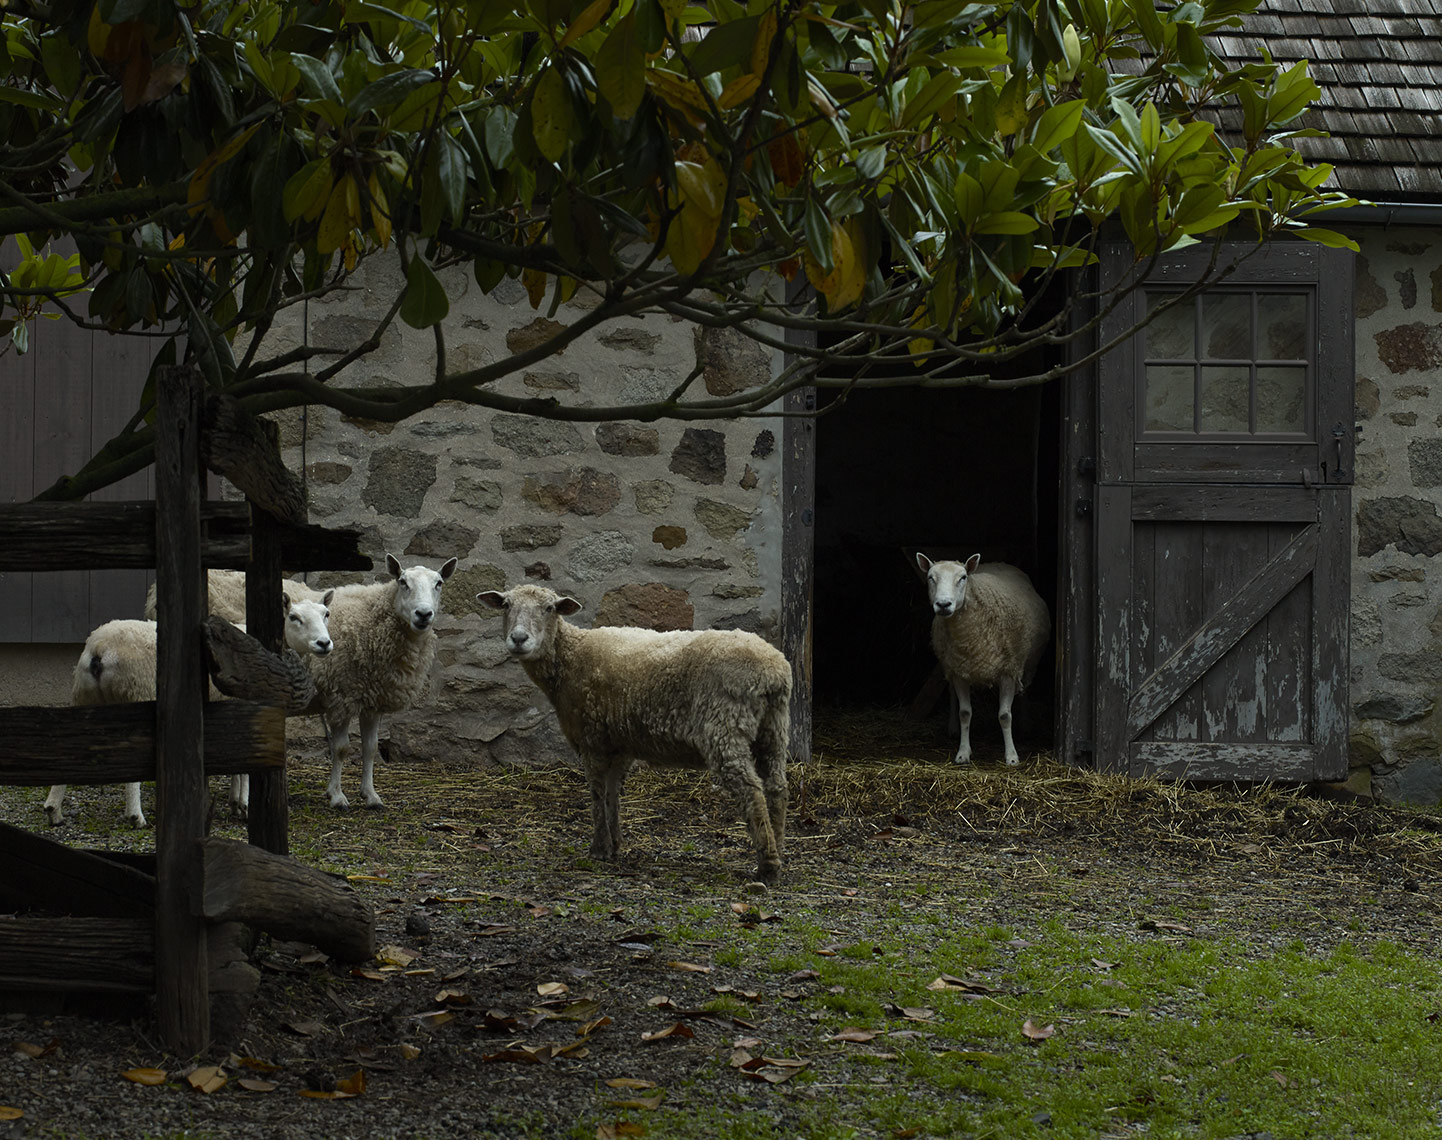 Sheep_OldeHope-crop